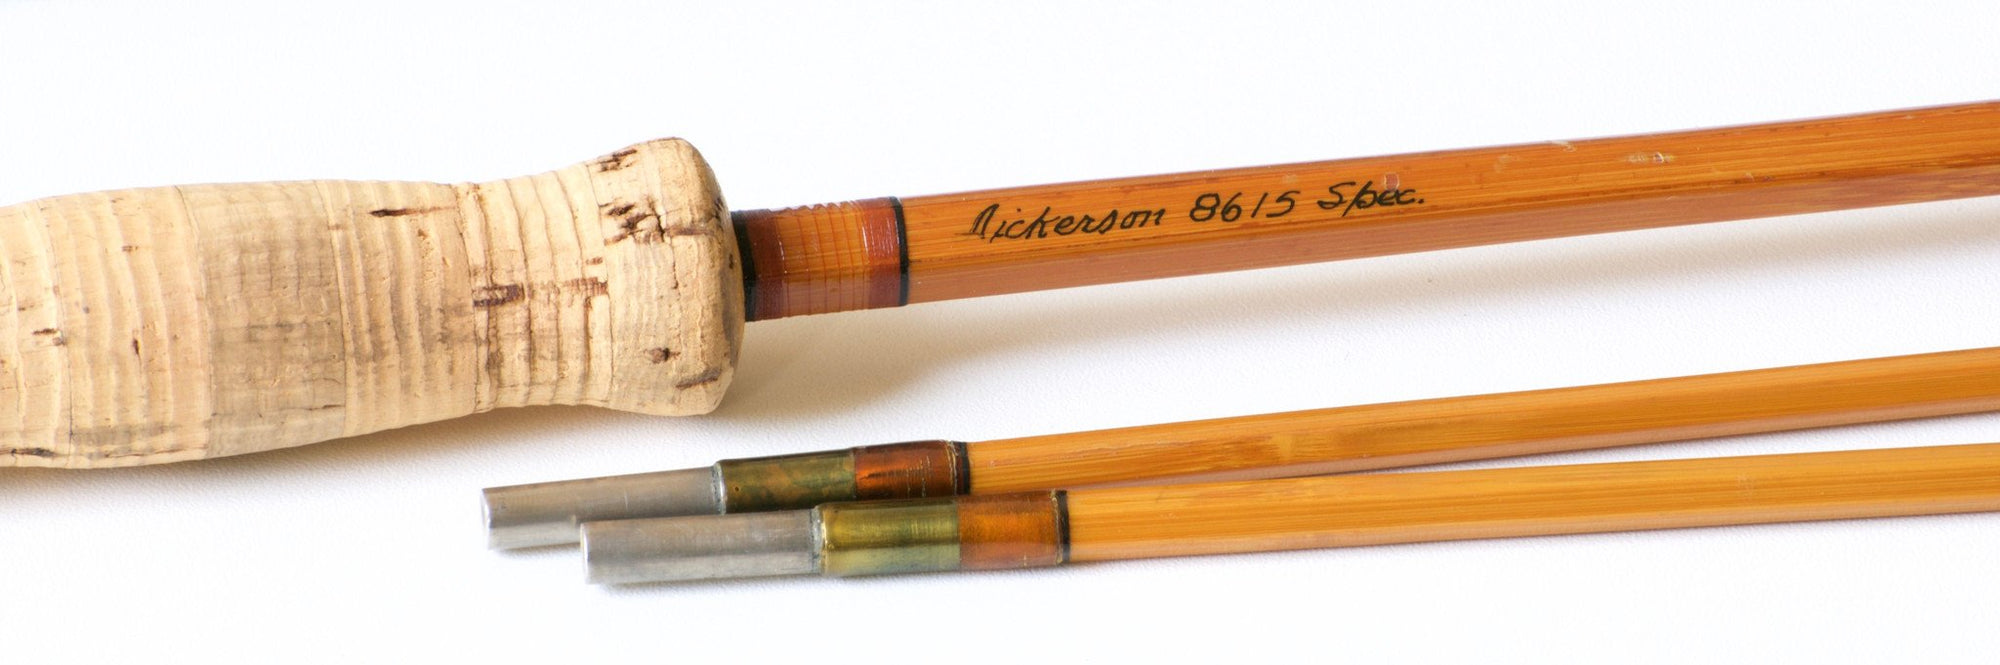 Lyle Dickerson -- Model 8615 Special Bamboo Rod